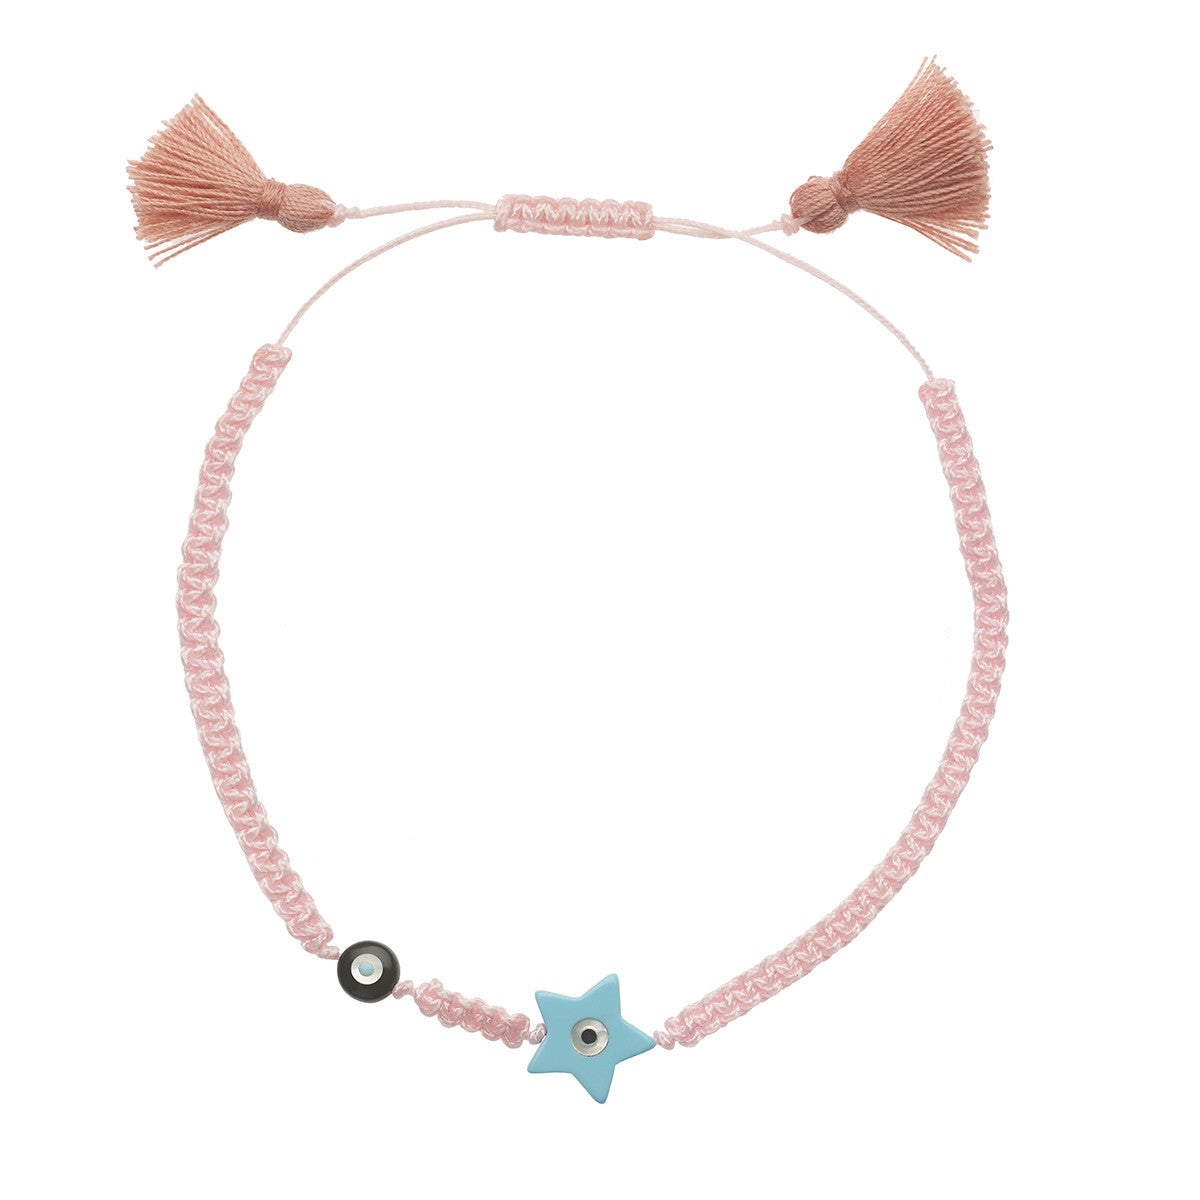 Summer Bracelet 14 Light Pink